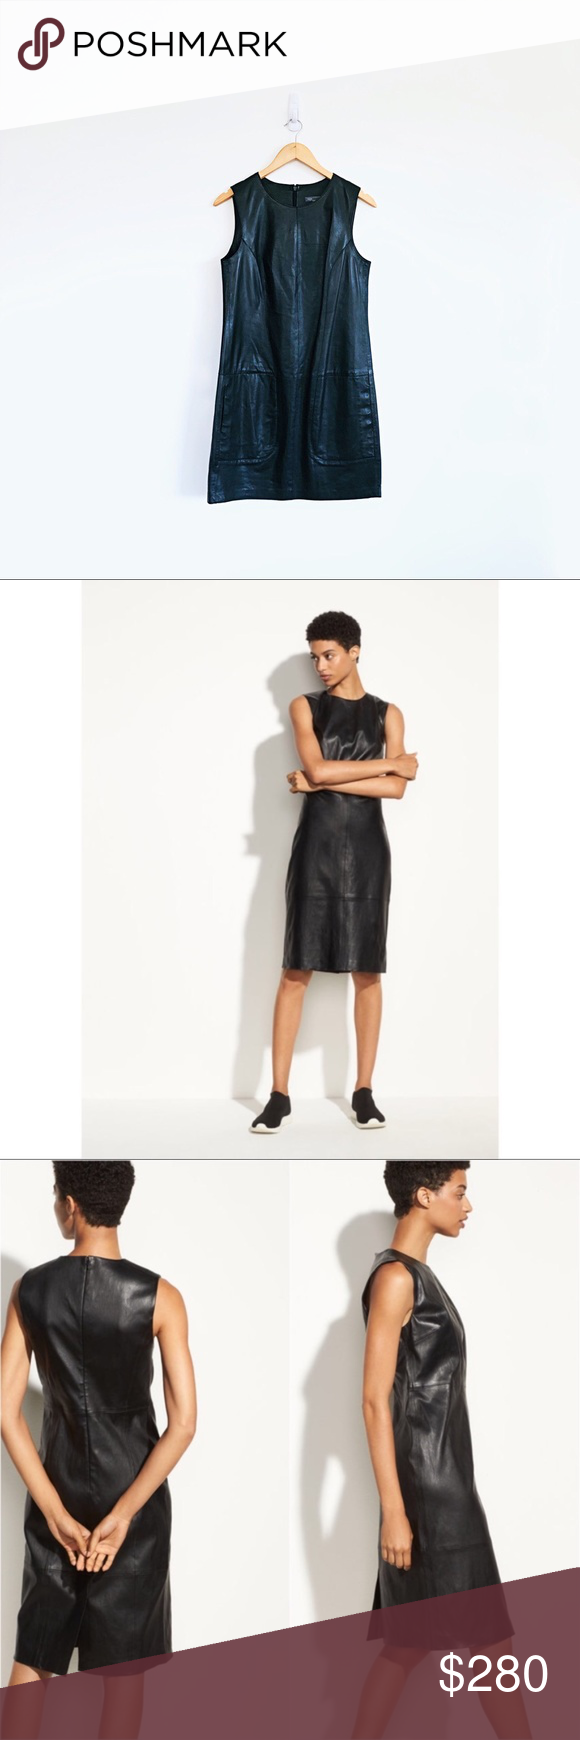 5d95674a435 Vince Sleeveless Authentic Leather Dress Vince Sleeveless Leather Dress A  streamlined silhouette, crafted in supple